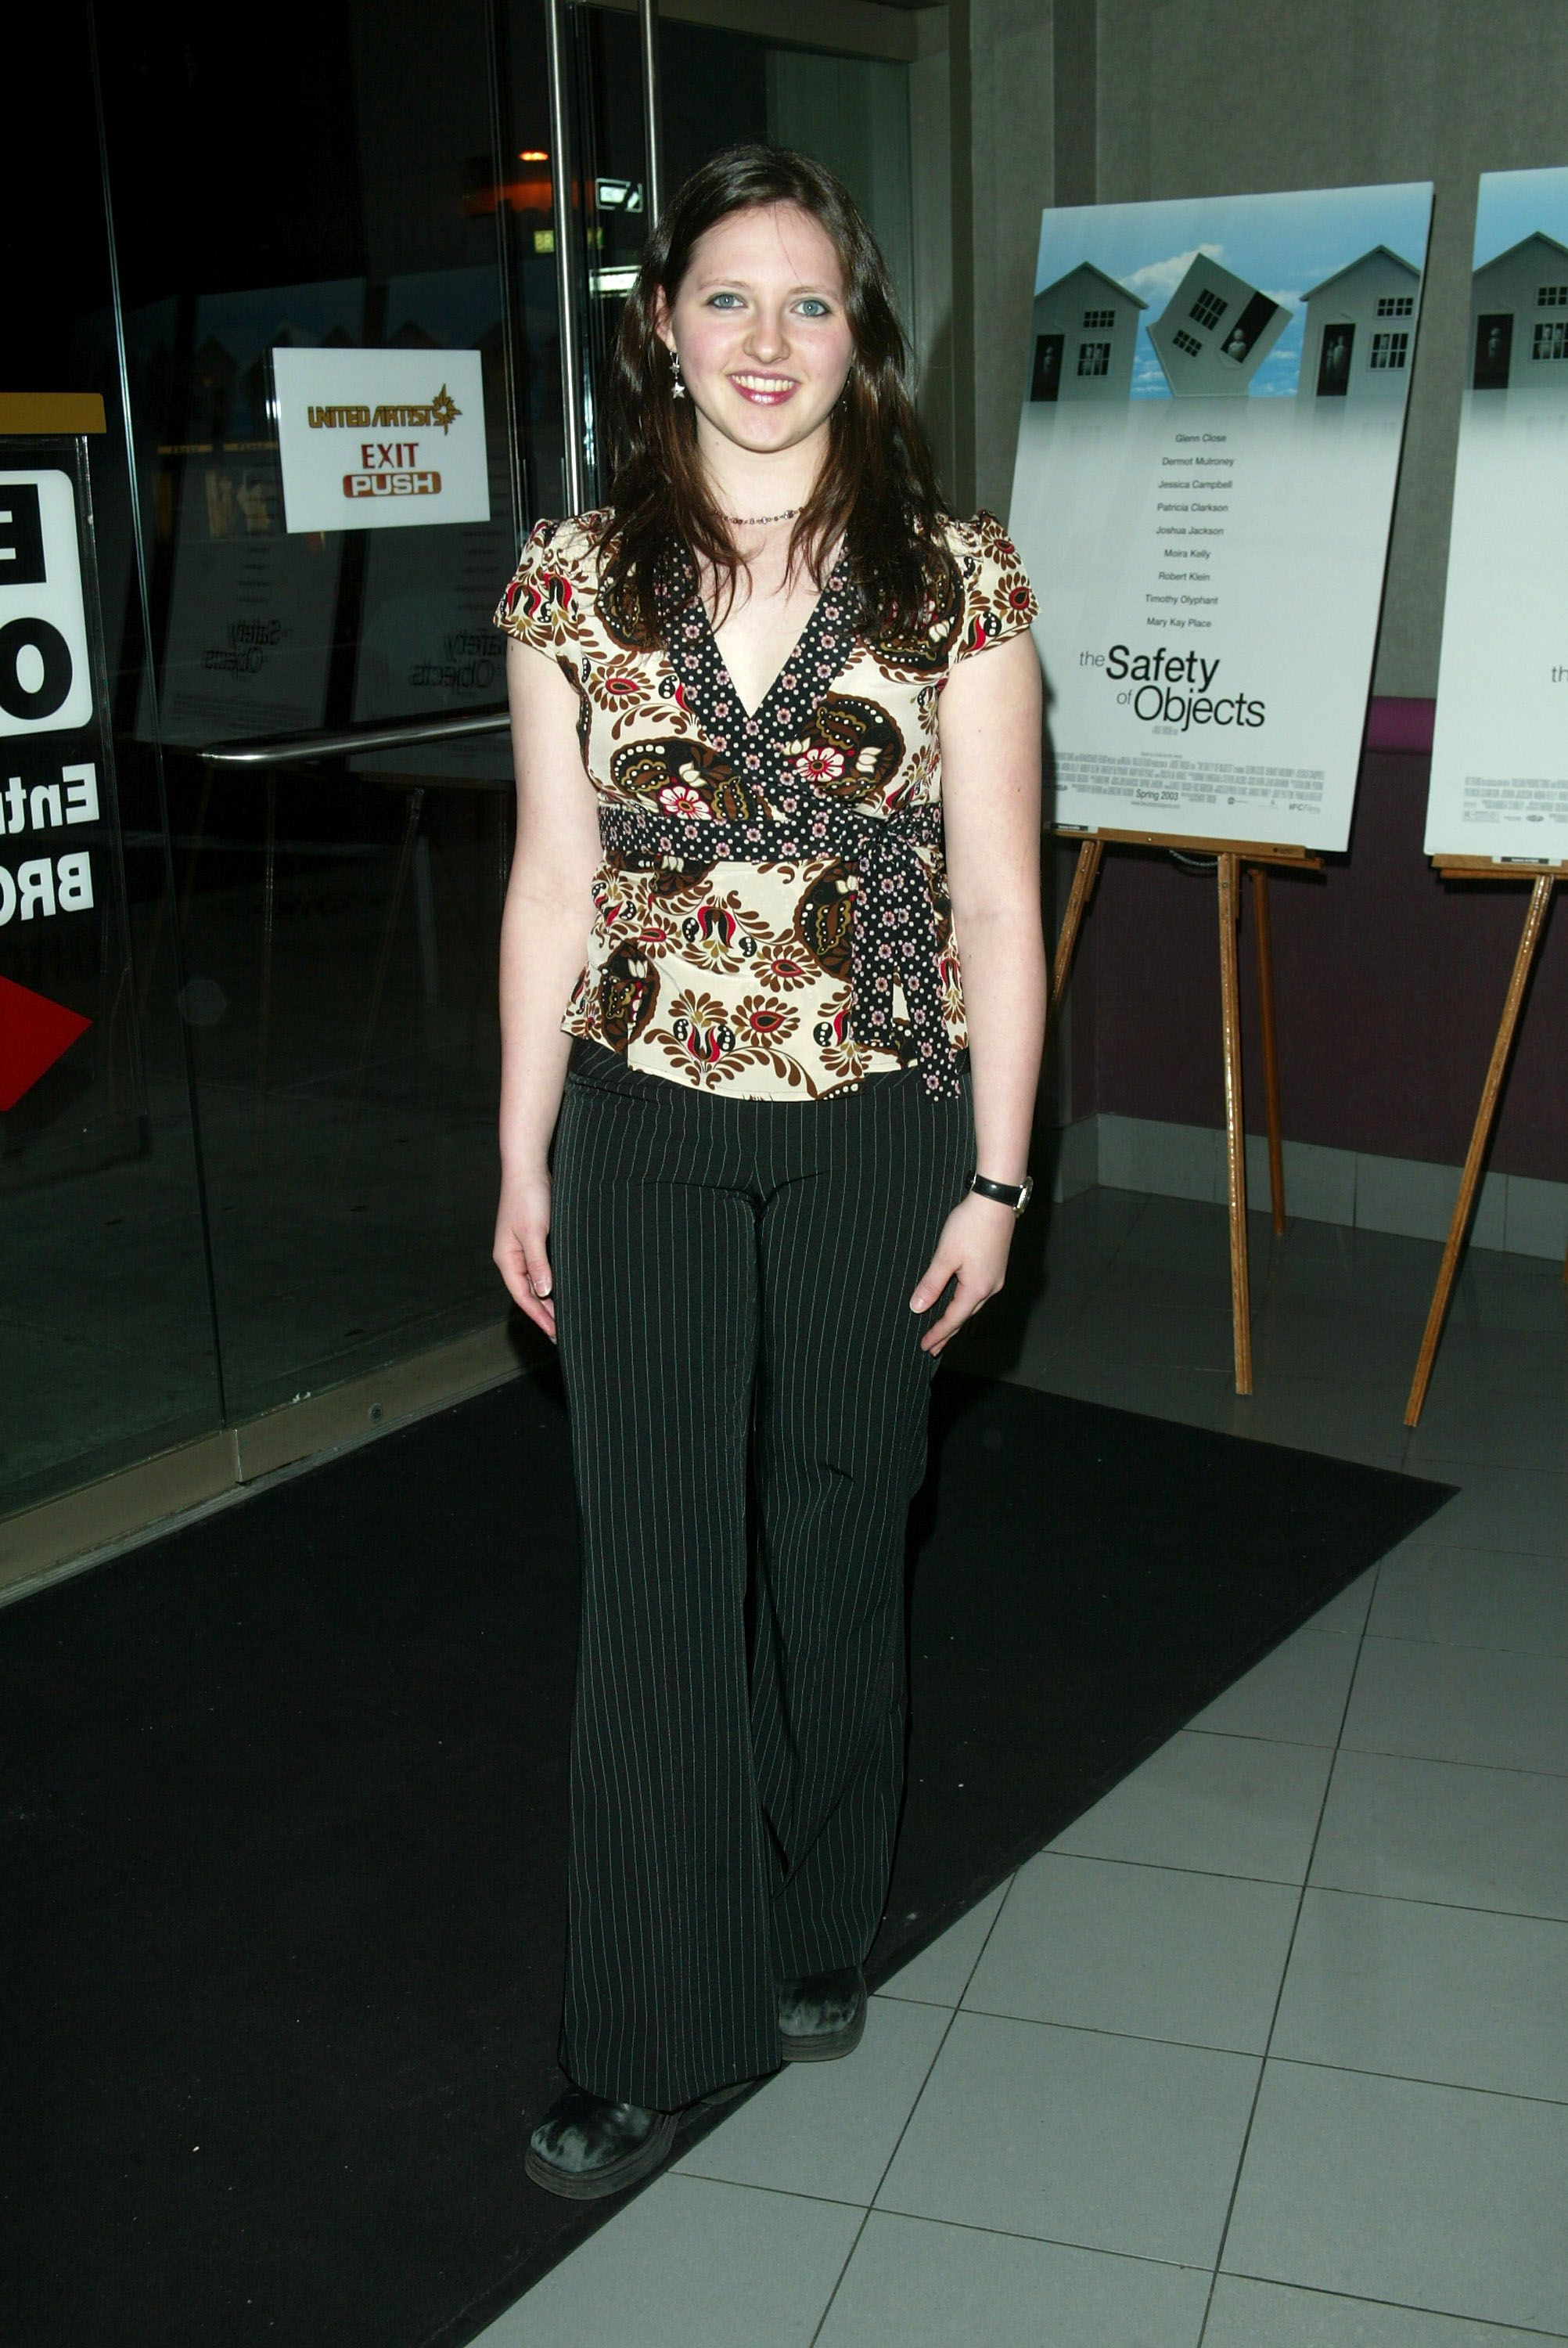 """The late Jessica Campbell at the premiere of """"The Safety Of Objects"""" at Regal's Union Square Theater March 4, 2003 